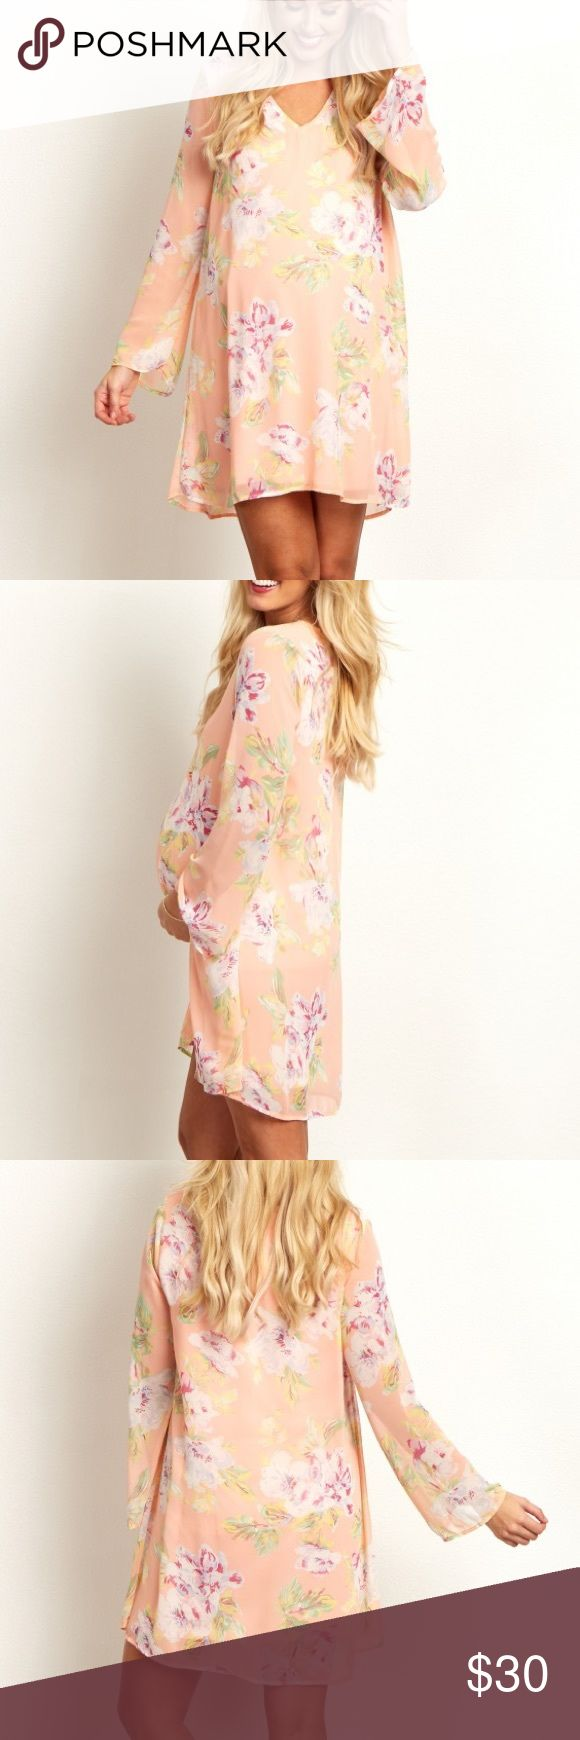 Floral maternity dress Pink Floral Printed V Neck Chiffon Maternity Dress. NWOT. Super cute for a baby shower 👶🏼 Pinkblush Dresses Long Sleeve